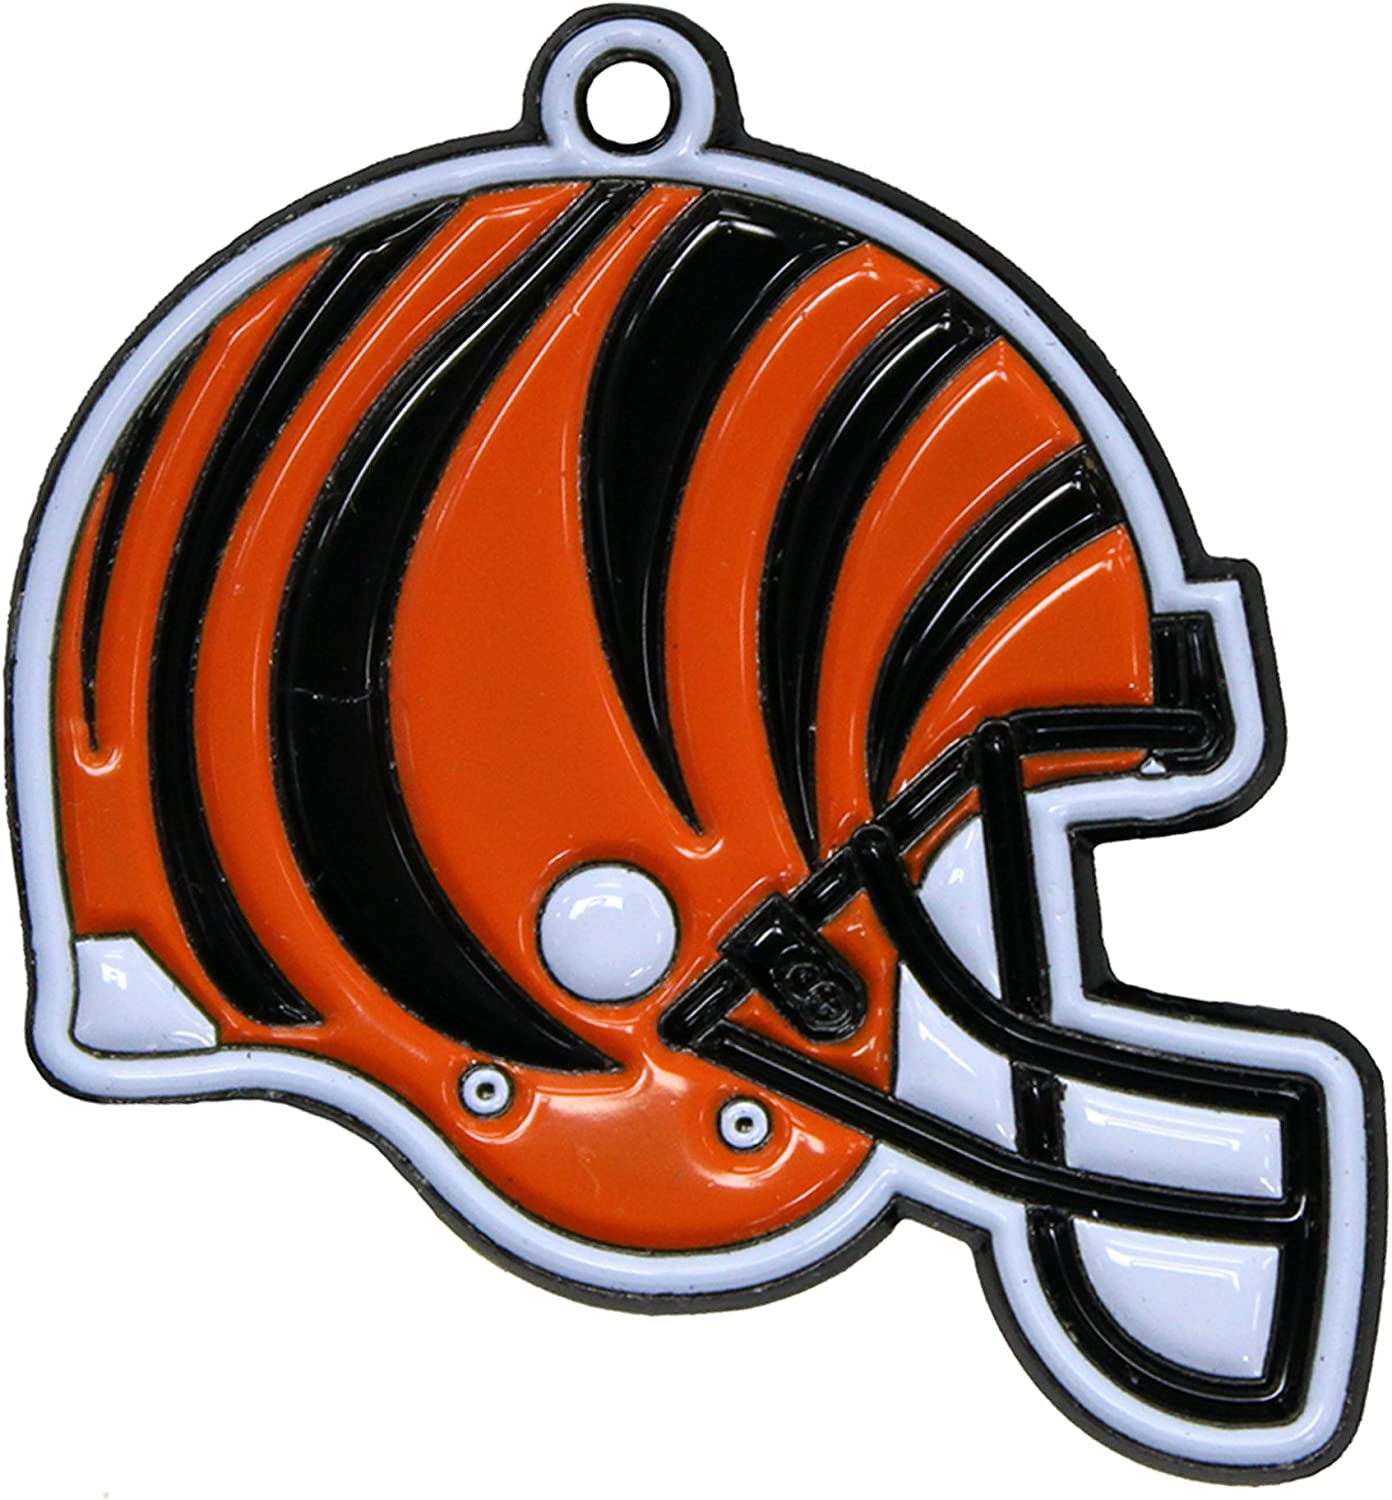 NFL Dog ID TAG - Smart Tracking Animer and price revision Retrieval Tag. Sys Popular brand in the world Best Pet